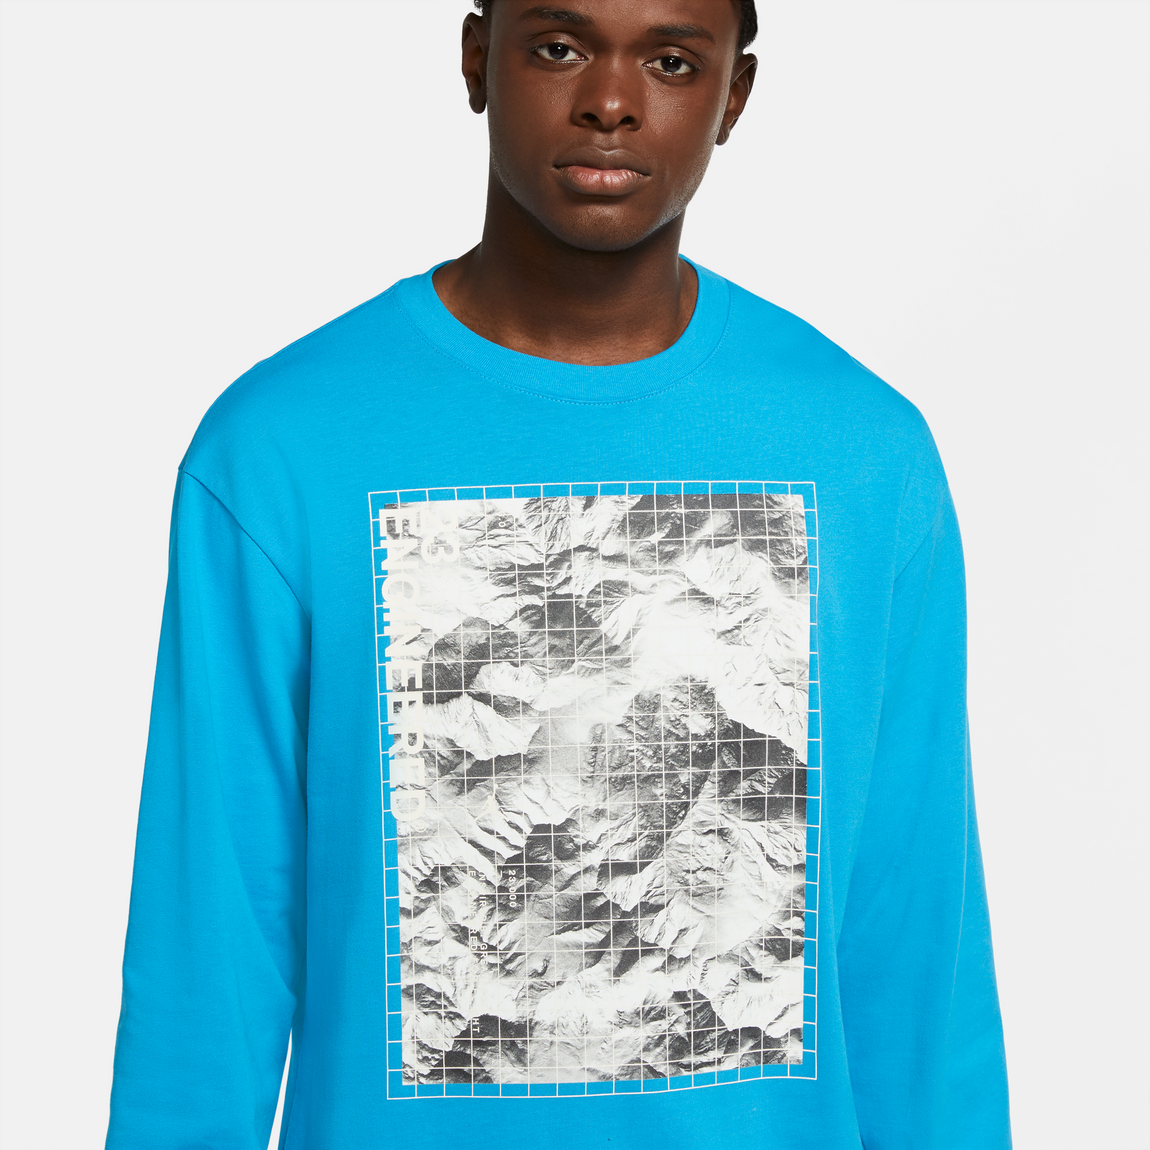 Jordan 23 Engineered LS Tee (Laser Blue) - Jordan 23 Engineered LS Tee (Laser Blue) -